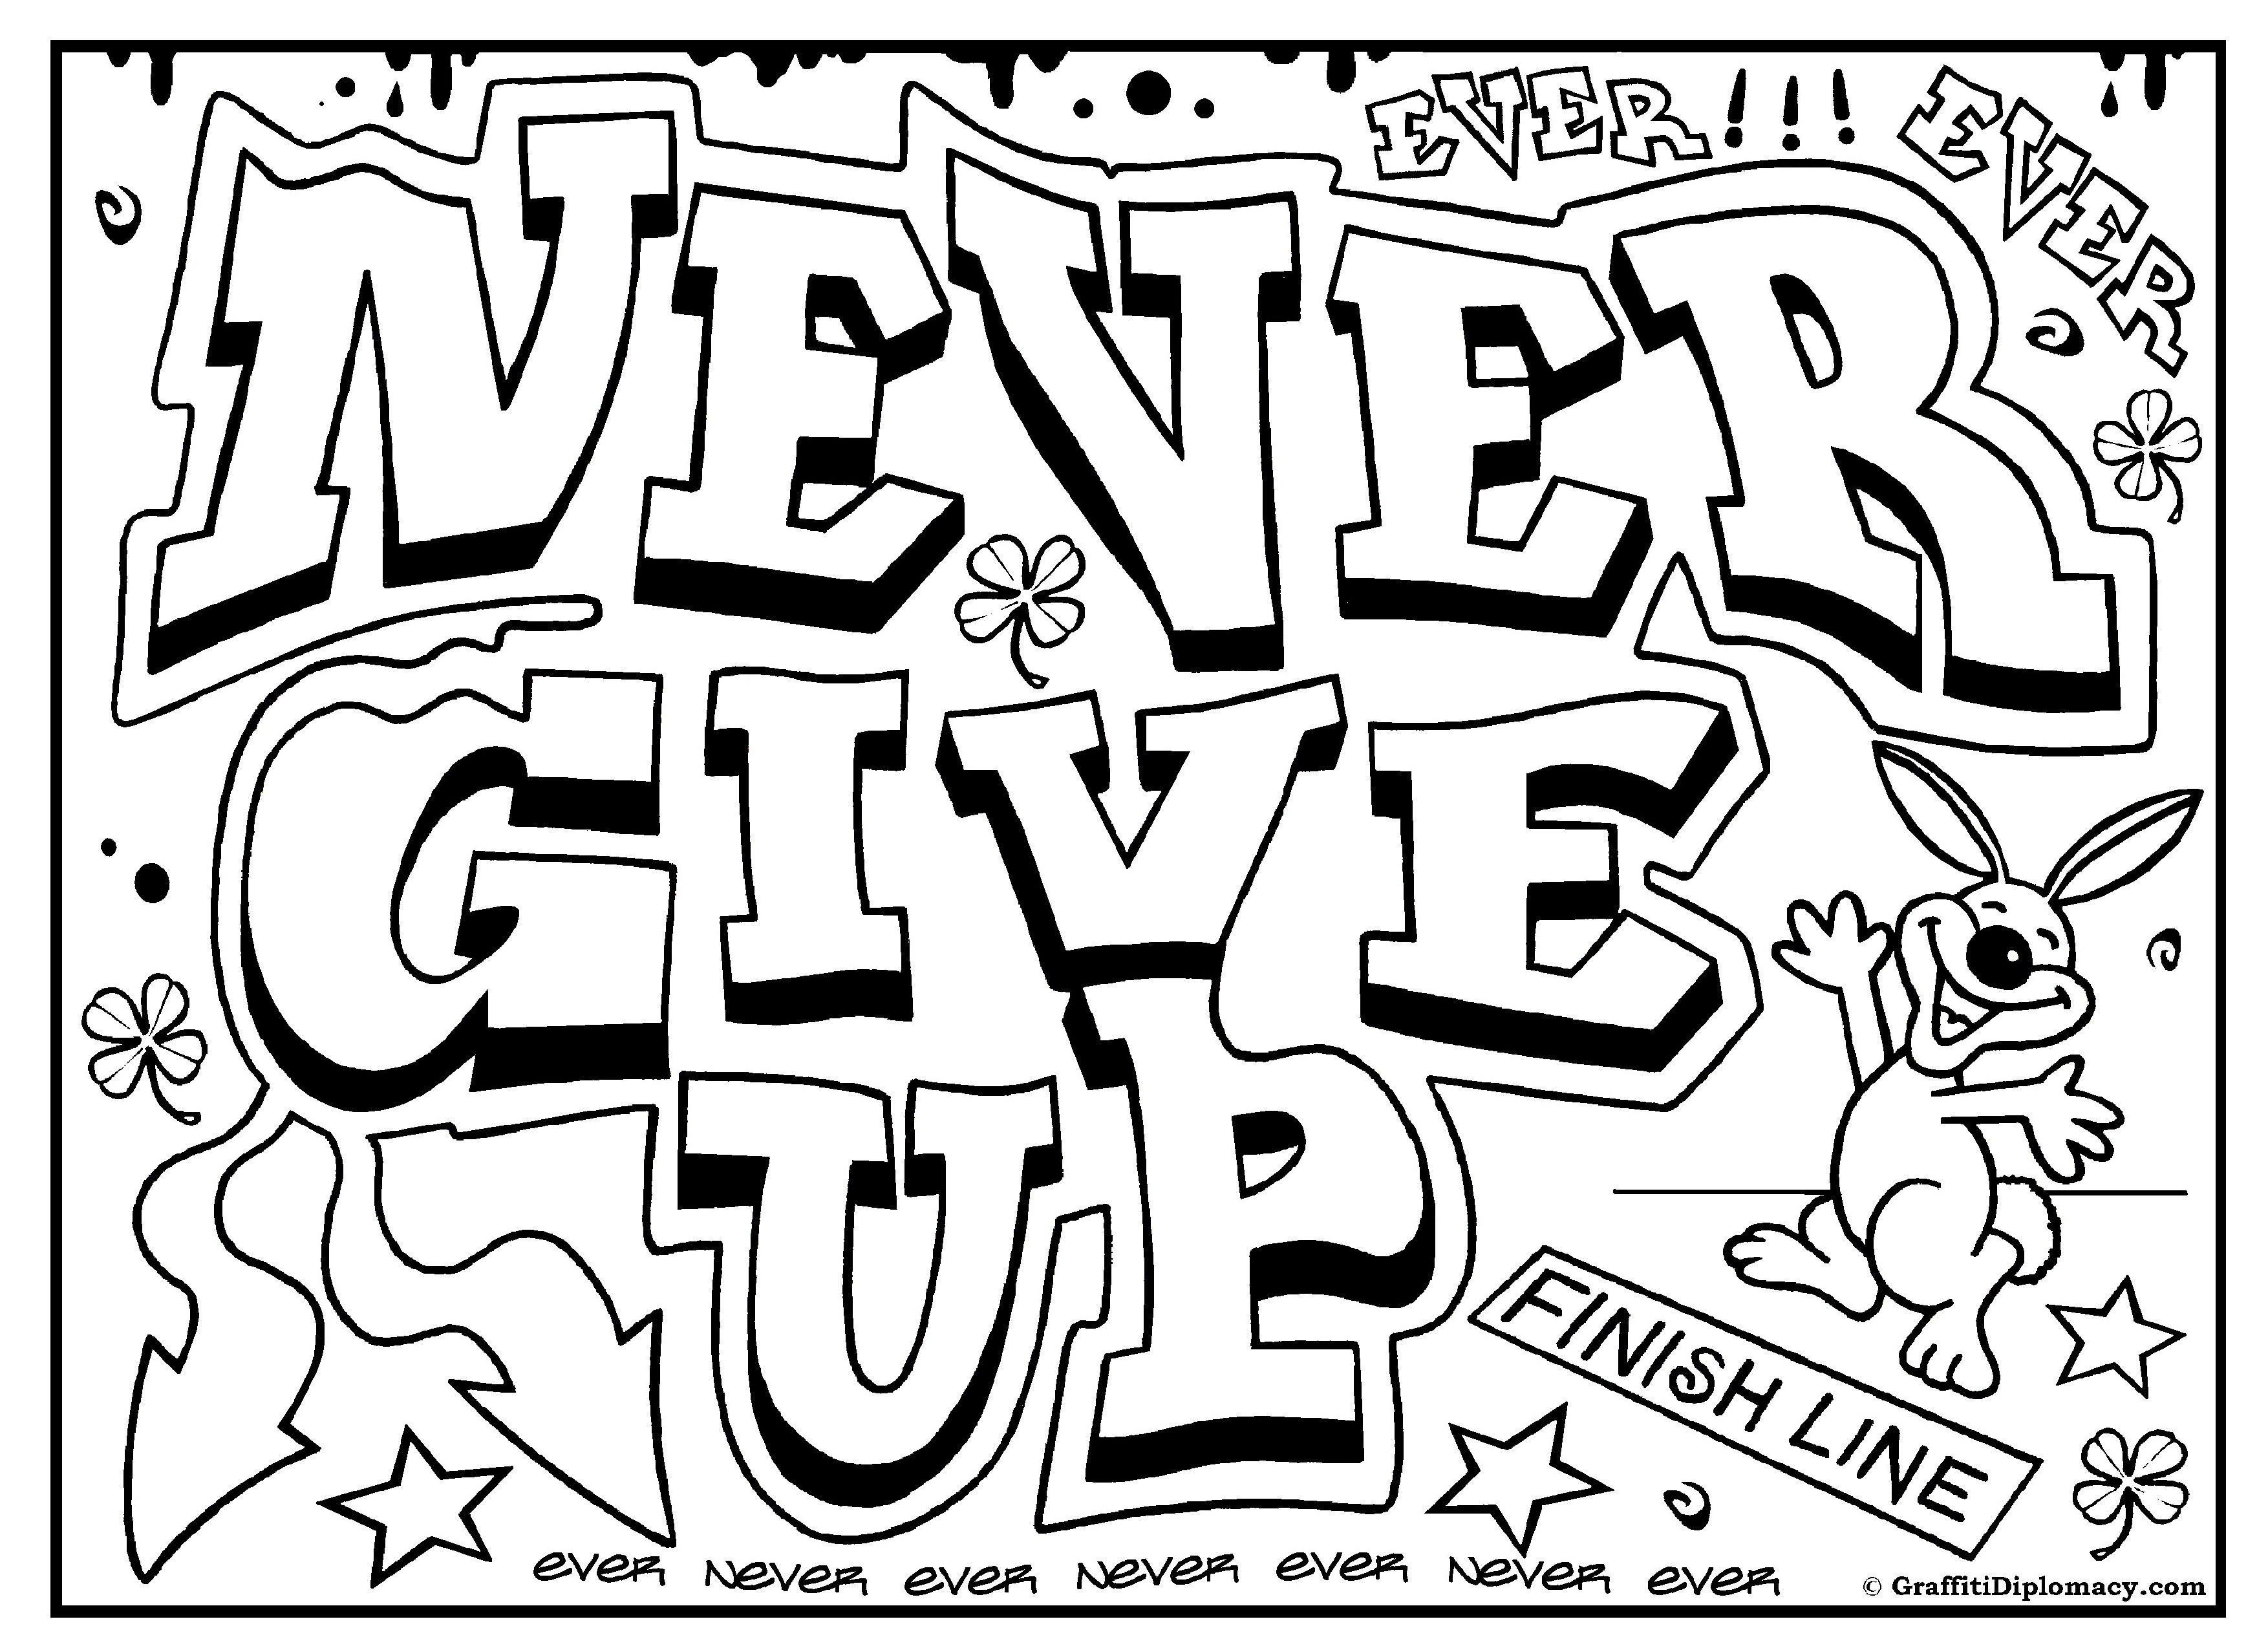 Graffiti Coloring Page, Free Printables For Kids To Color, Free - Free Printable Coloring Pages On Respect